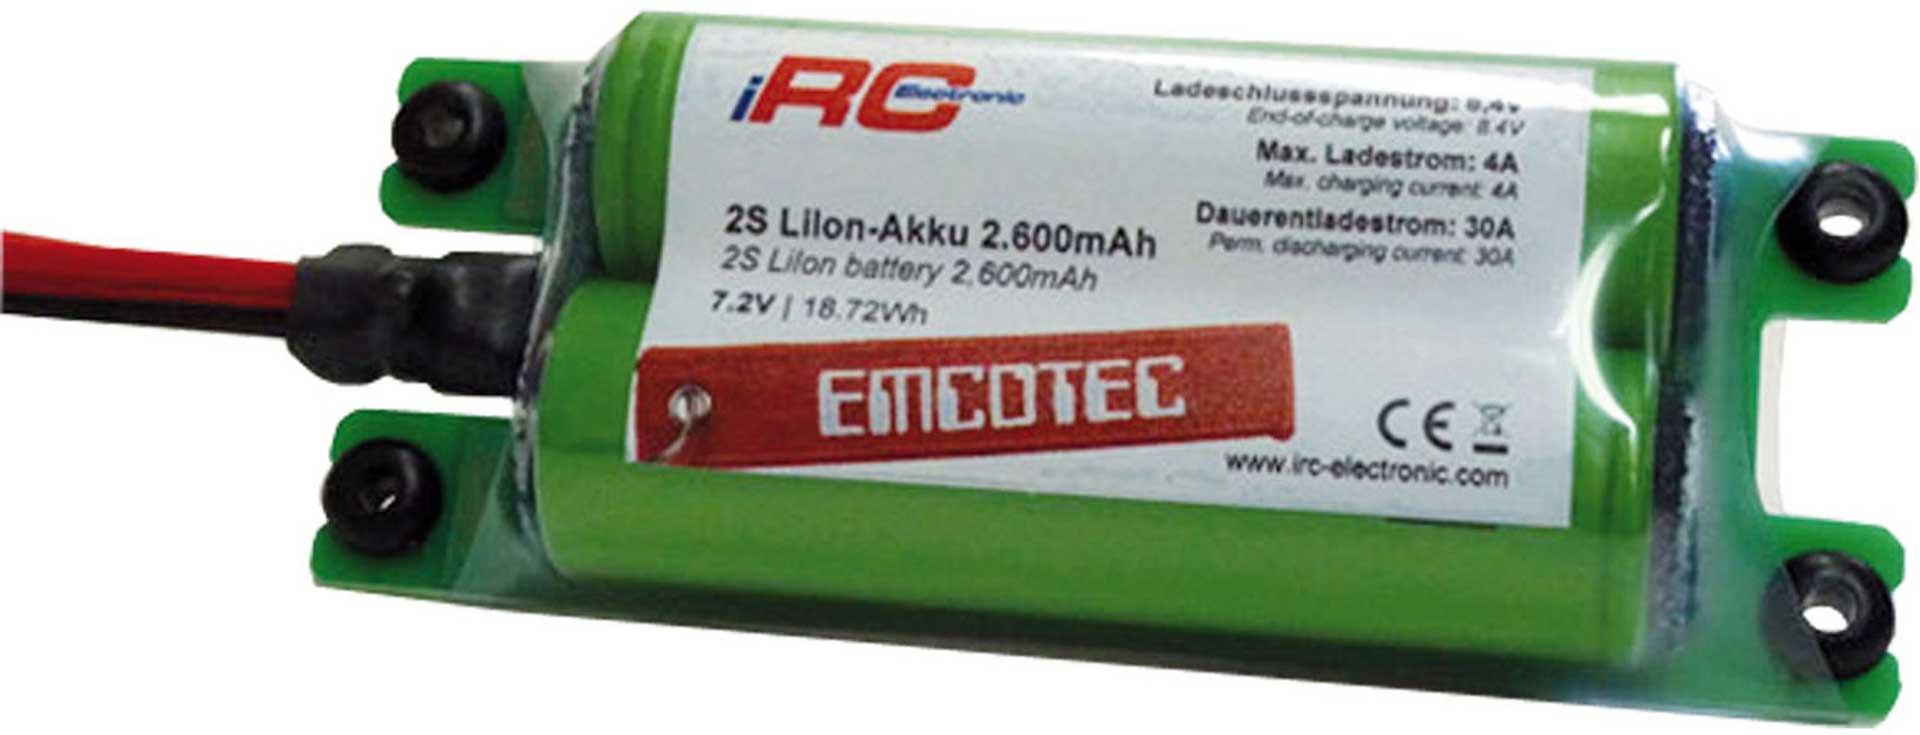 EMCOTEC LION BATTERY PACK 2600 MAH 2S 7.2V COMP ACT 30A WITH MPX PLUG